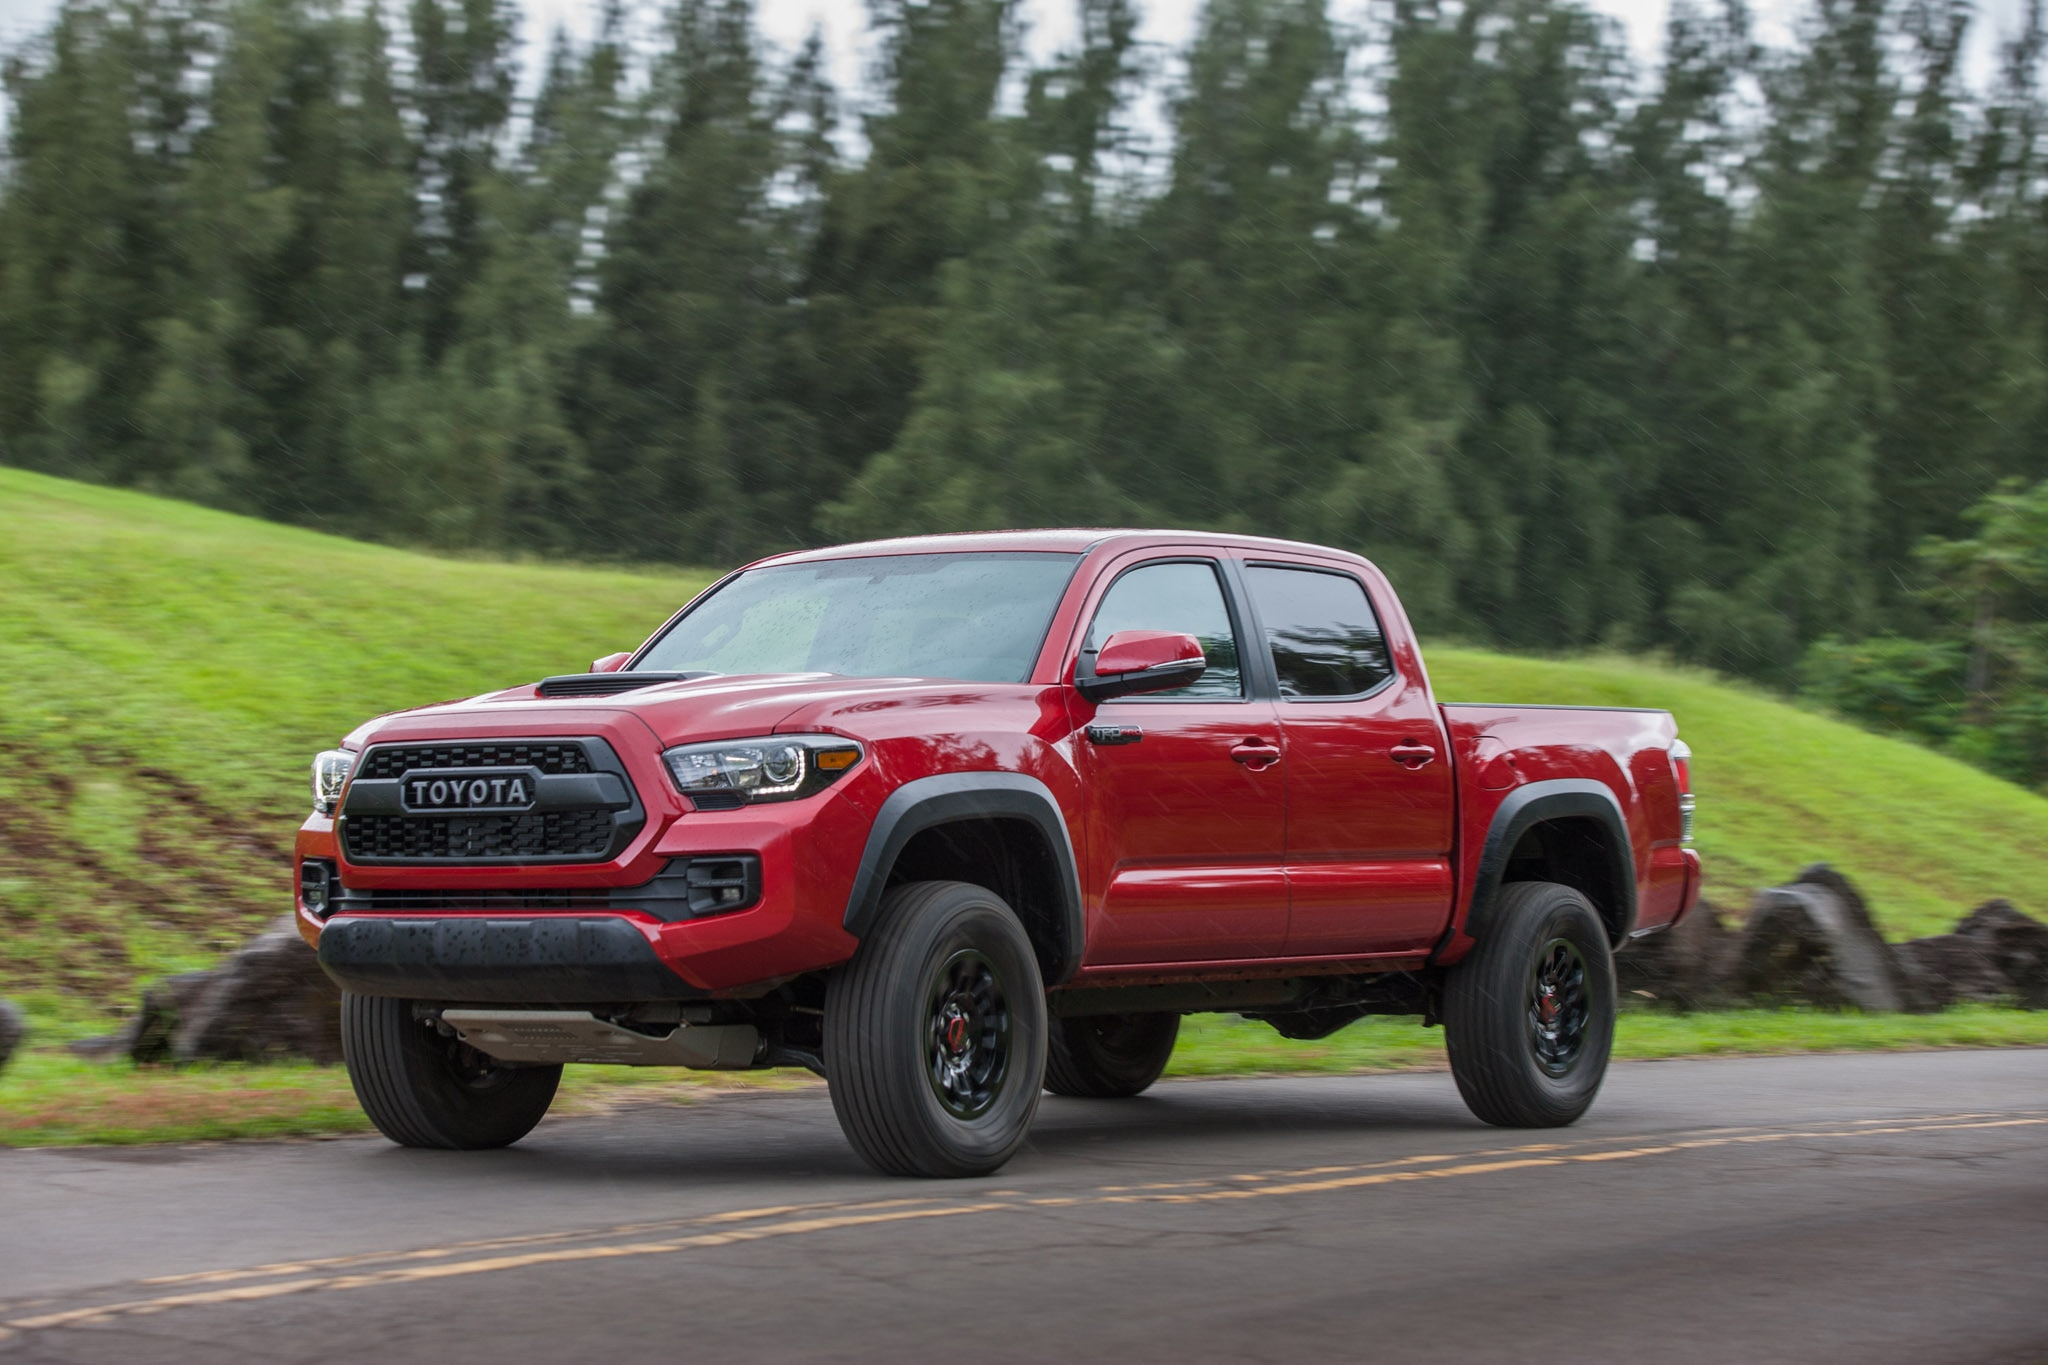 2017 toyota tacoma trd pro first drive review automobile magazine. Black Bedroom Furniture Sets. Home Design Ideas